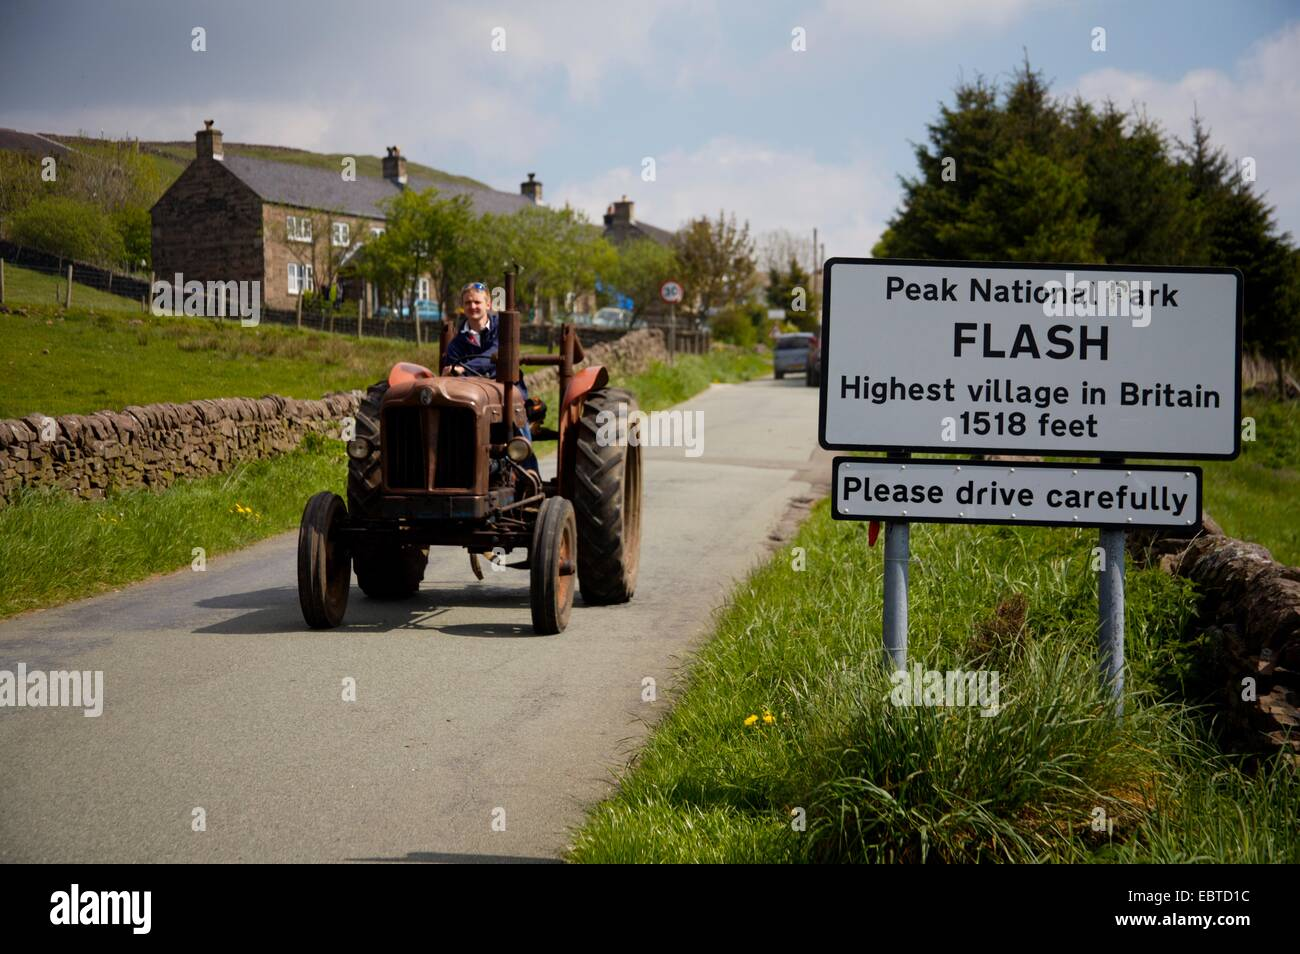 Flash, highest village in Britain and vintage tractor in annual tractor rally - Stock Image